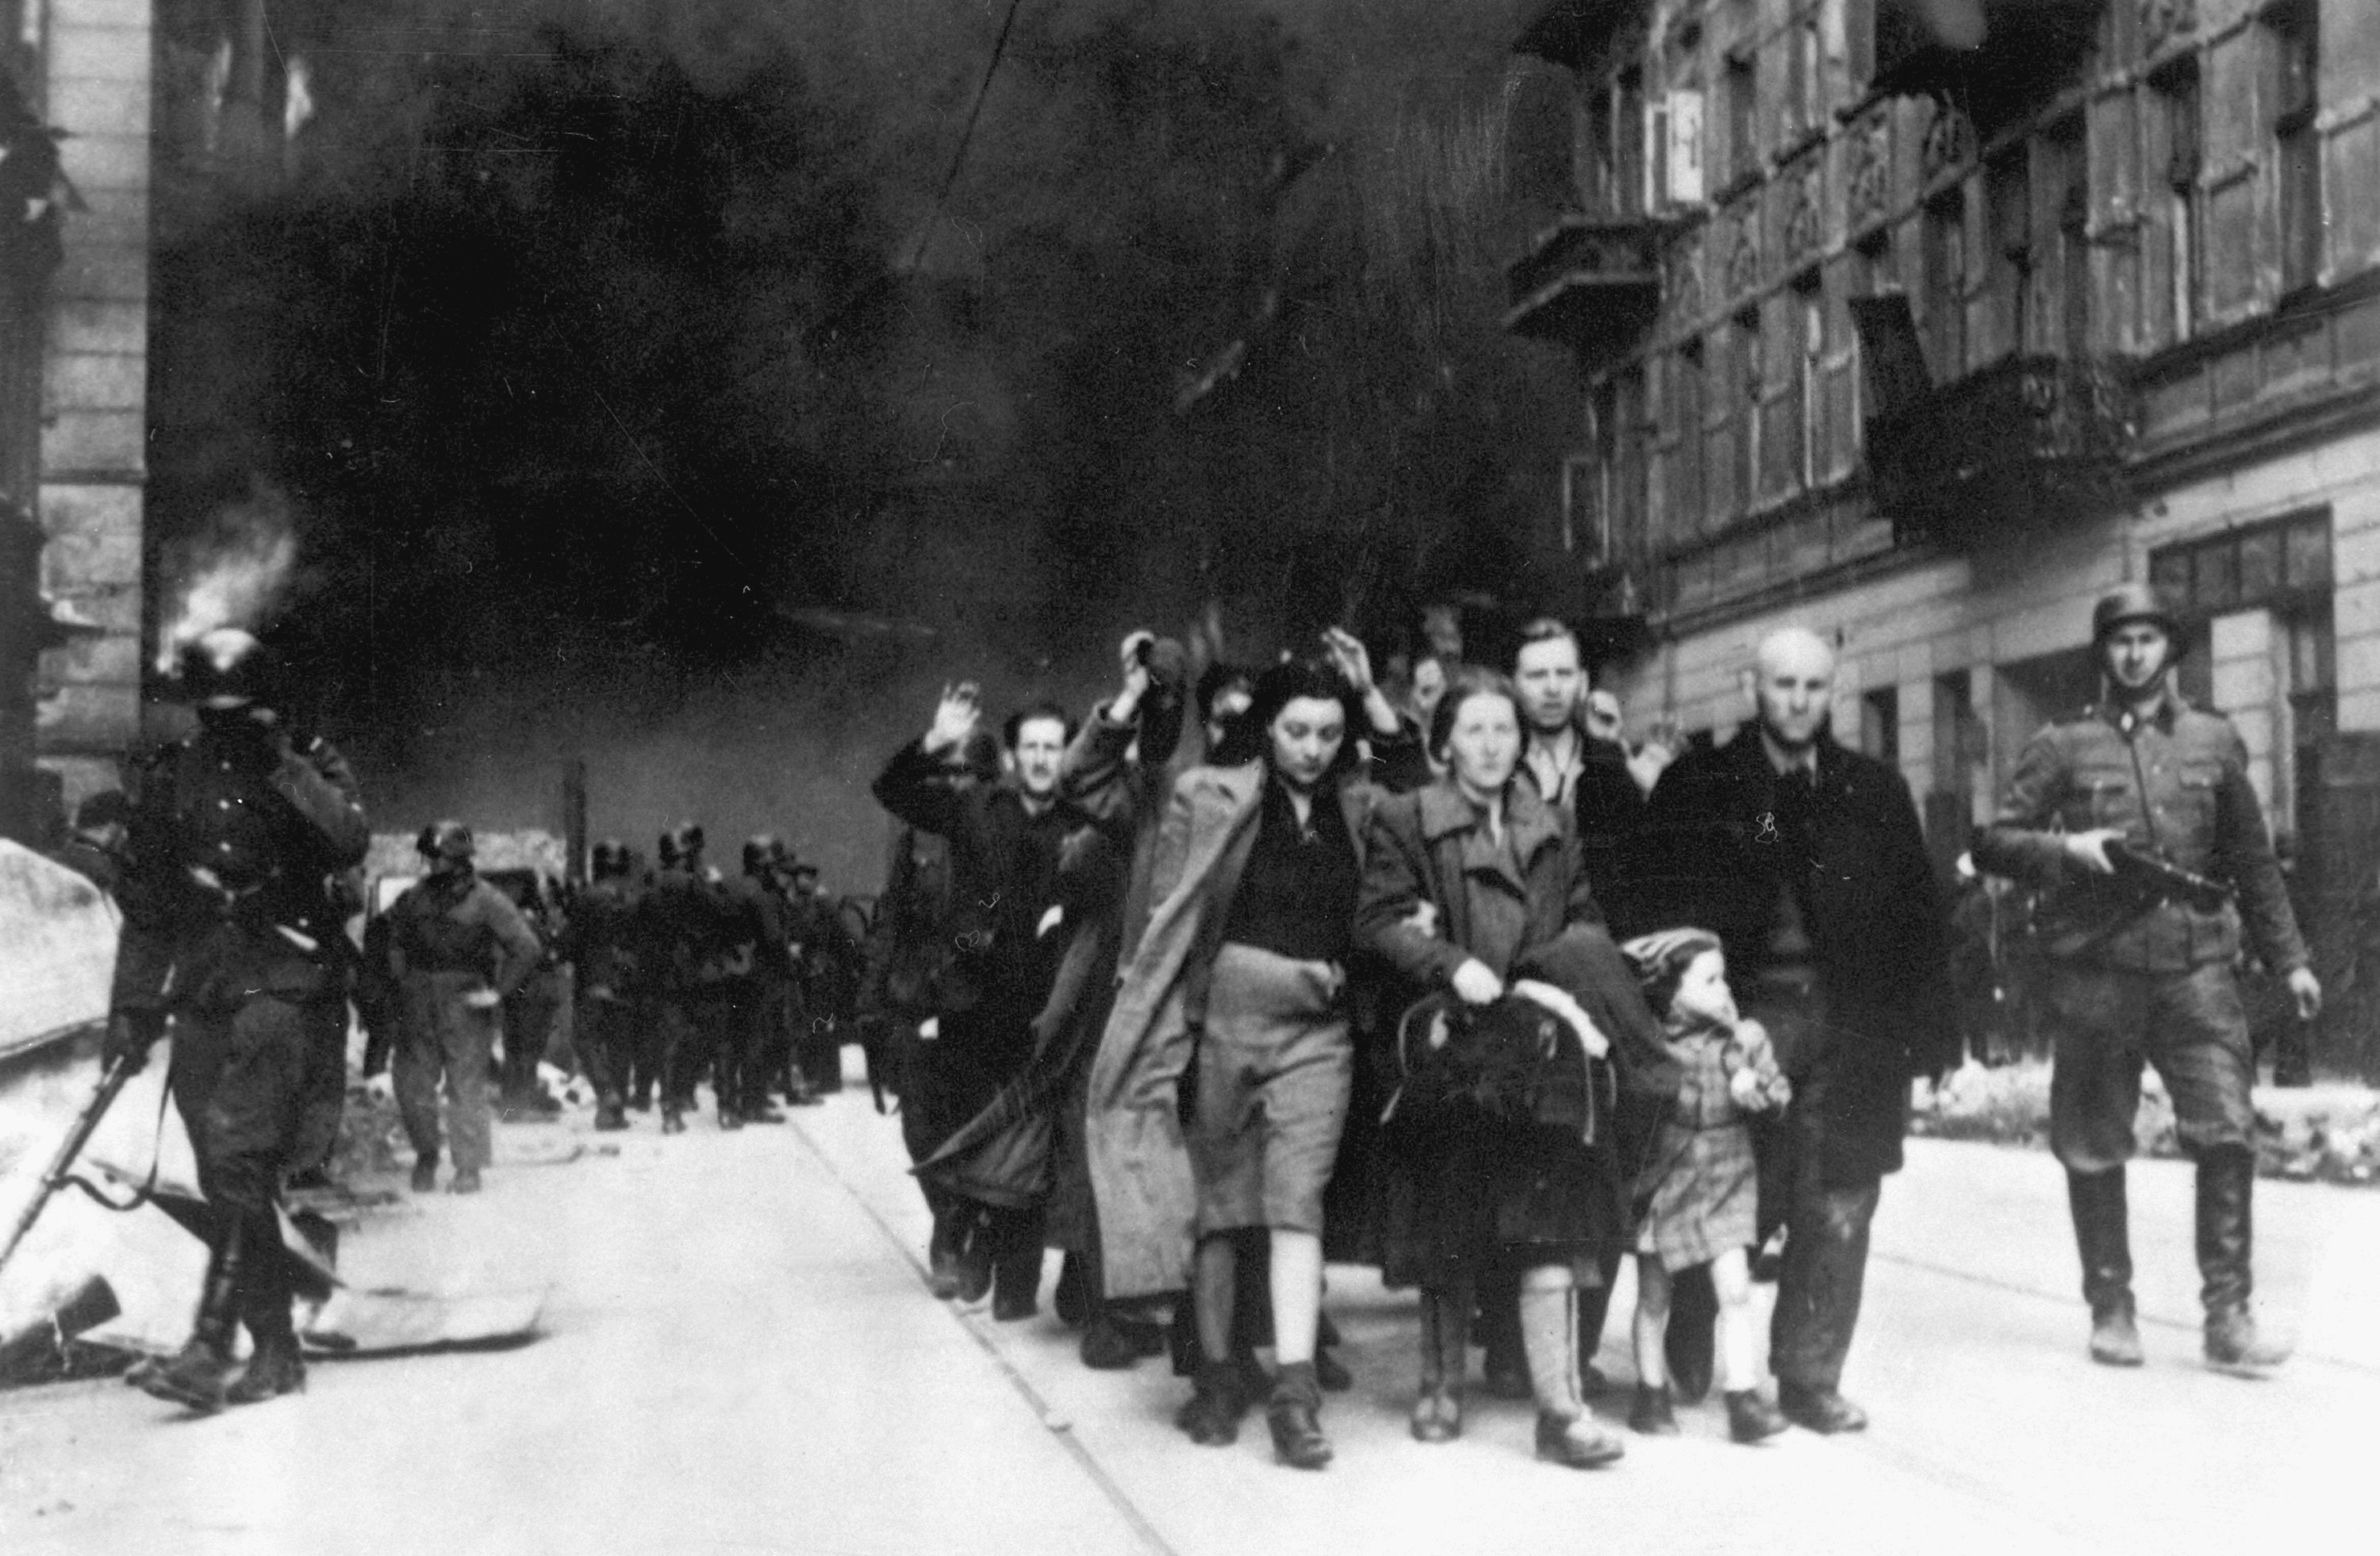 Jews in the Warsaw Ghetto are lead to a deportation point sometimebetween April19 and May 16, 1943.Wikipedia.